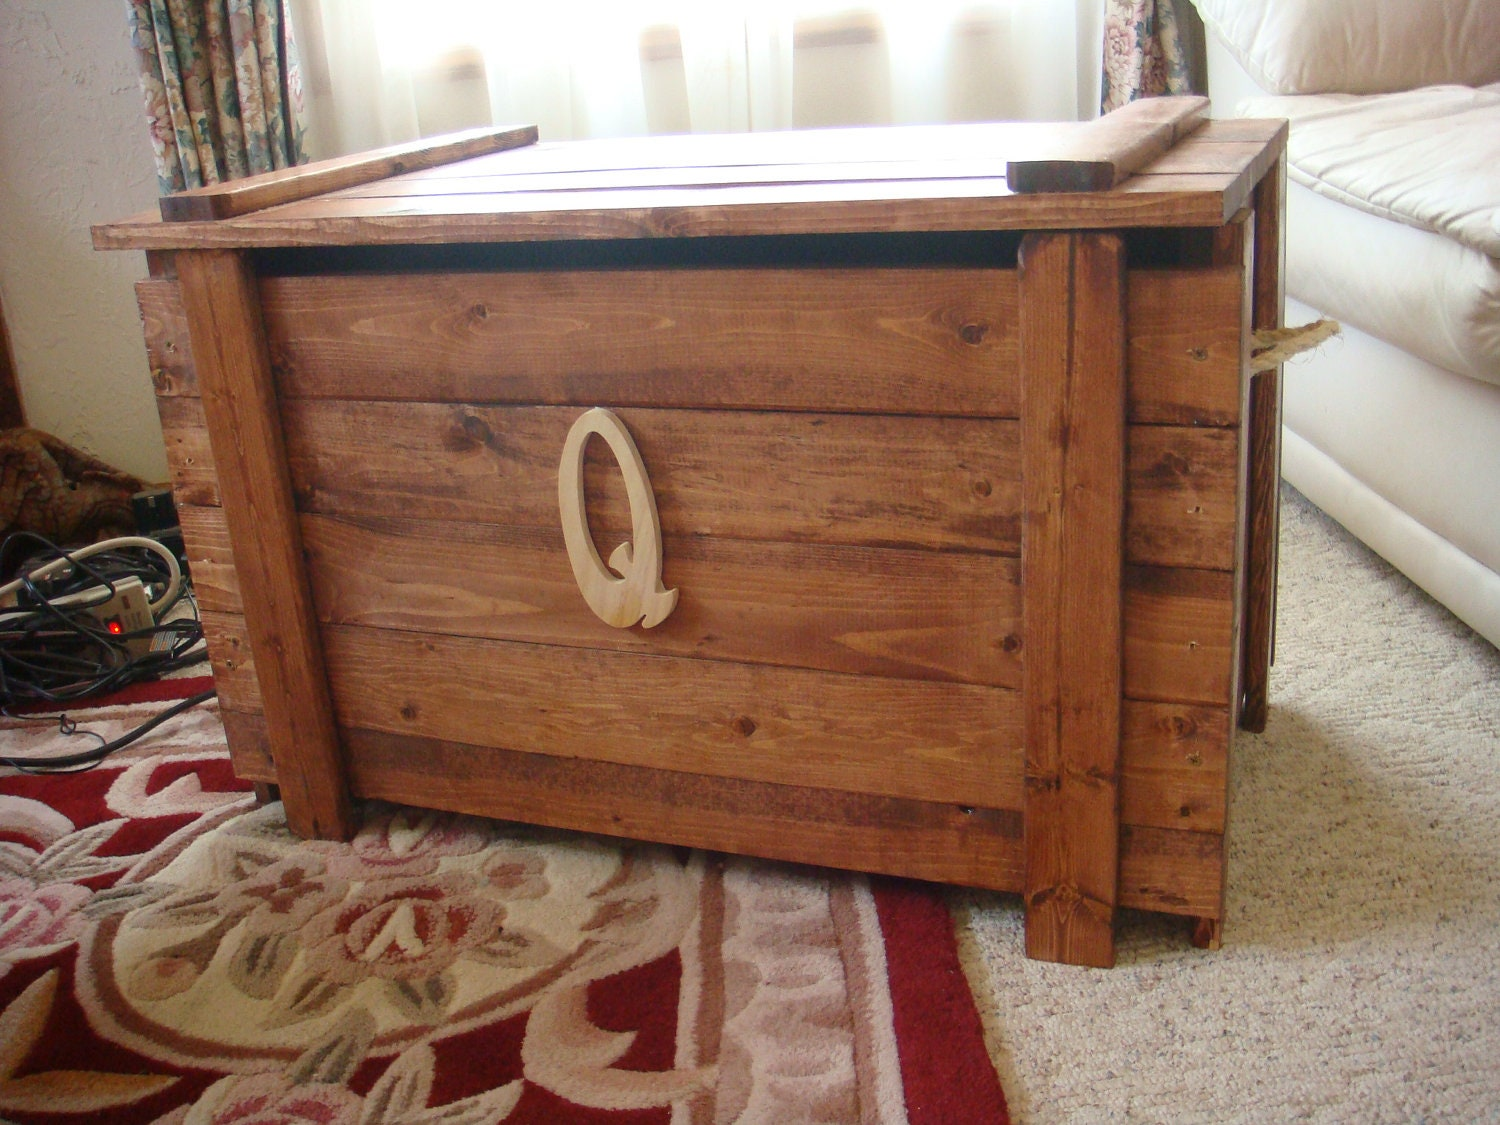 Wood Toy Chest Plans : New From Foreigntradex International ...